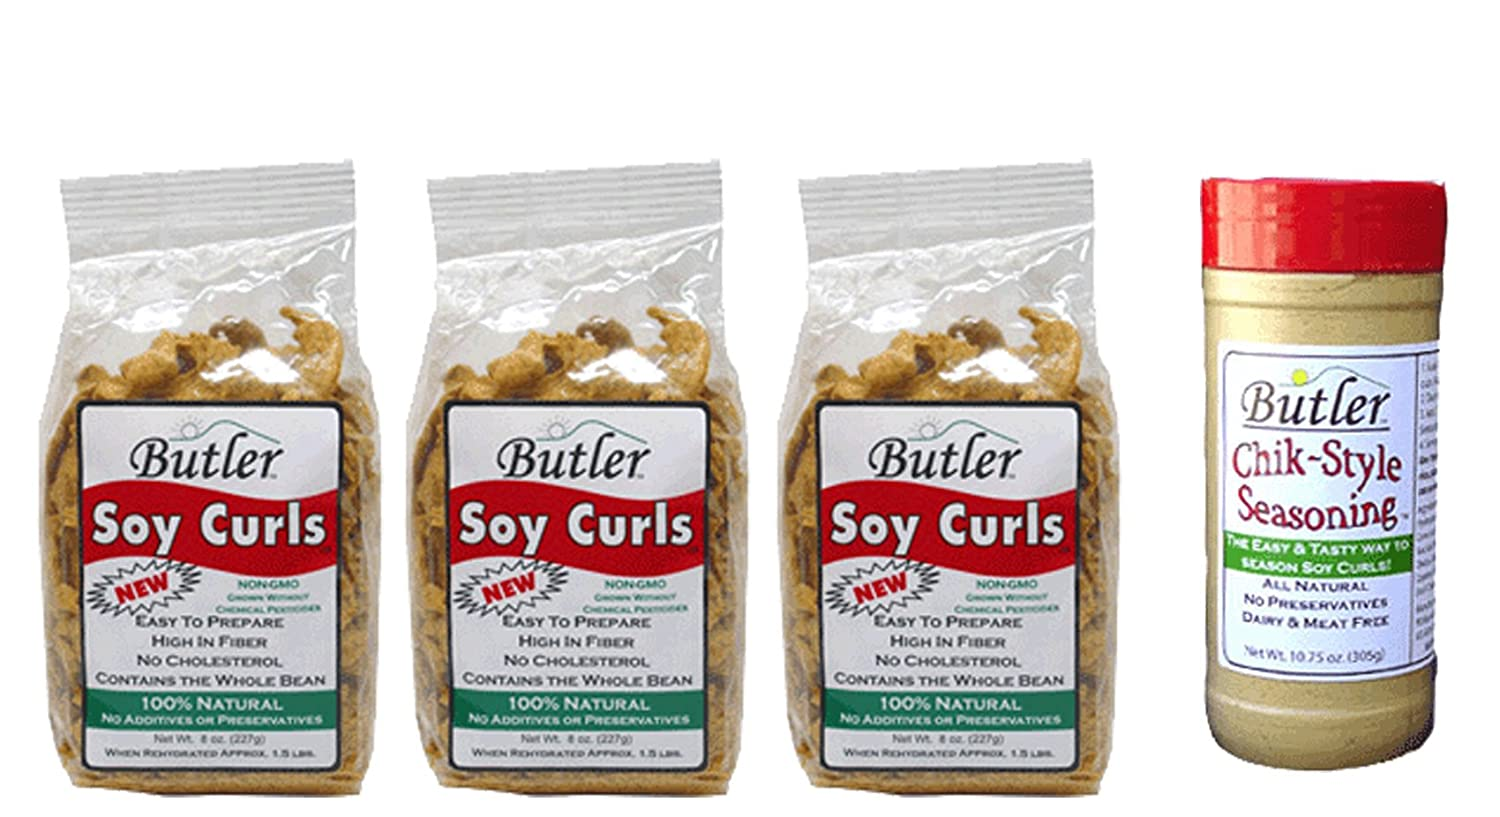 B00HAS4V14 Butler Soy Curls, 8 oz bags - 3 Pack + Chik-Style Seasoning 71wEaDNbDQL